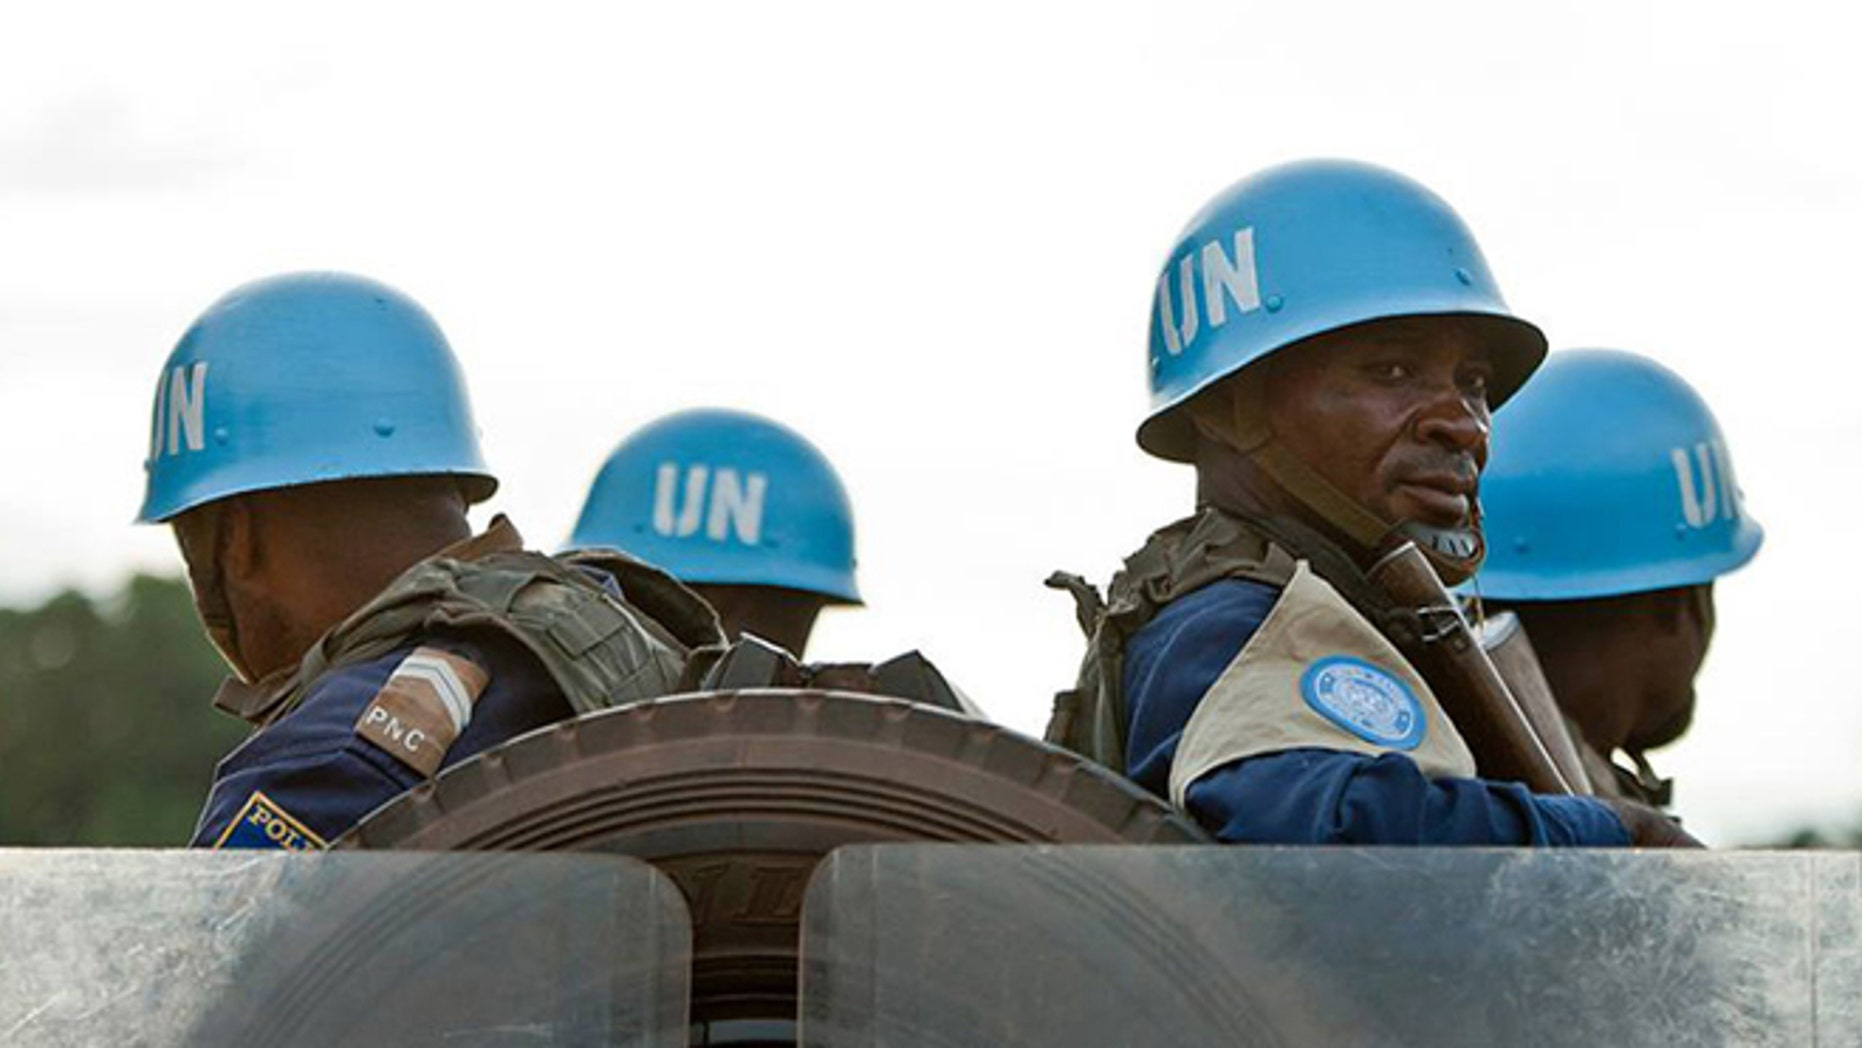 MINUSCA peacekeepers on patrol in the Central African Republic.